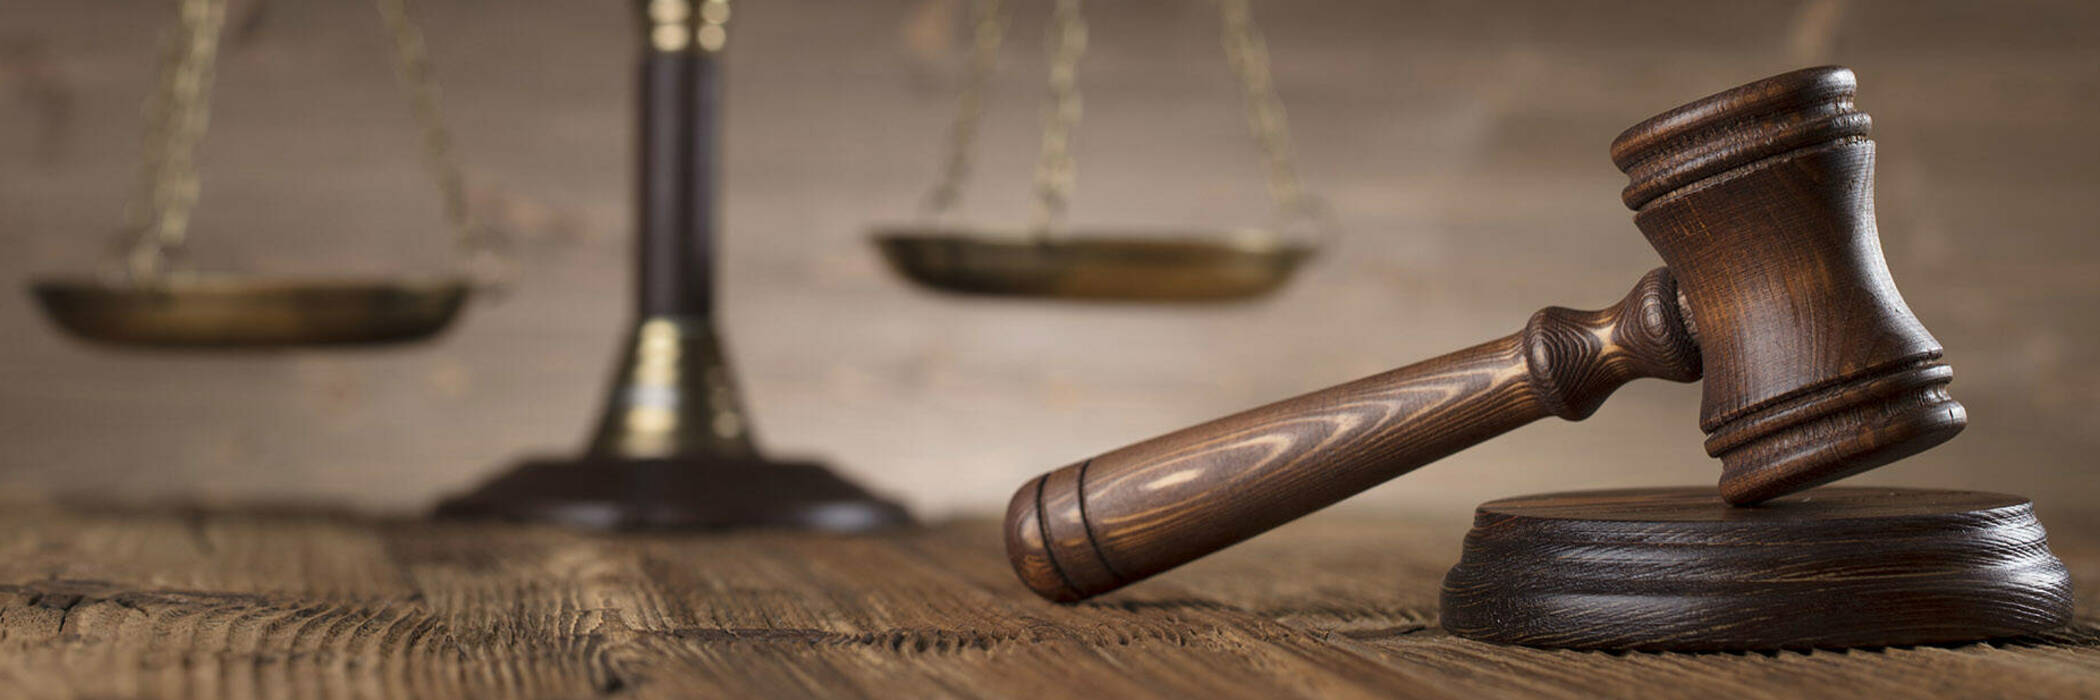 scales and gavel on table